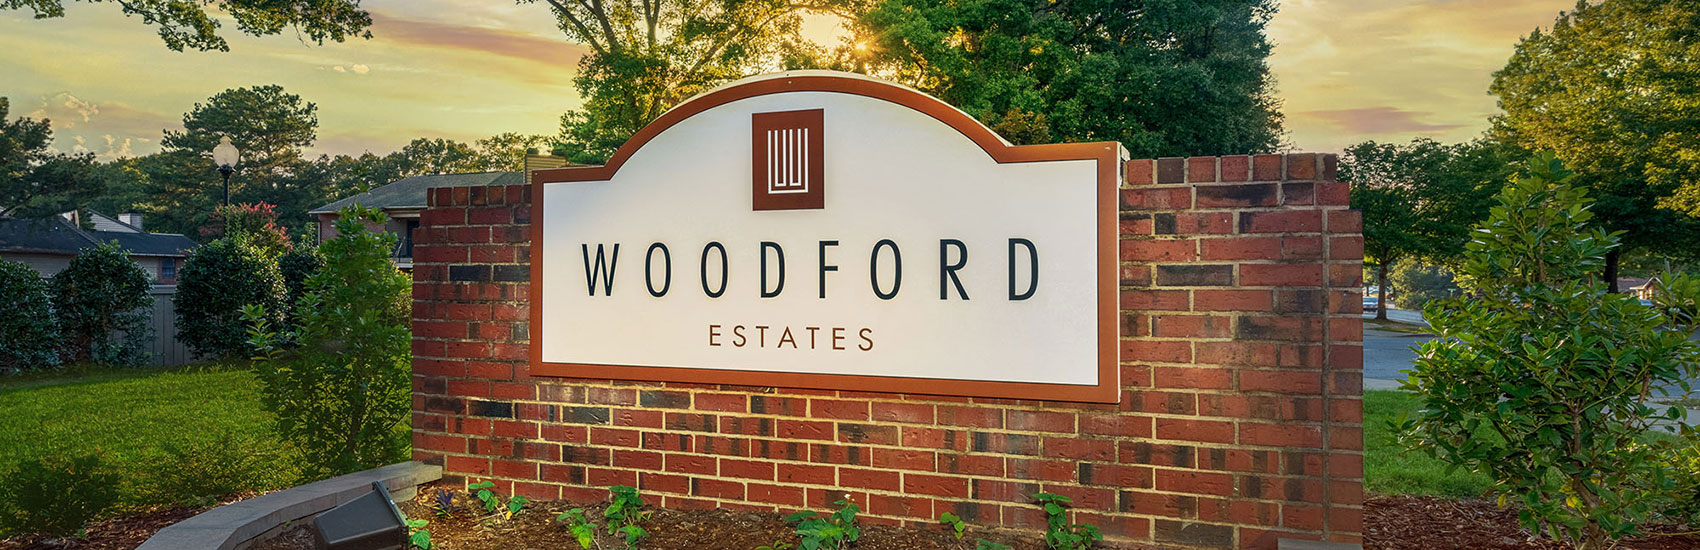 Entrada de Woodford Estates